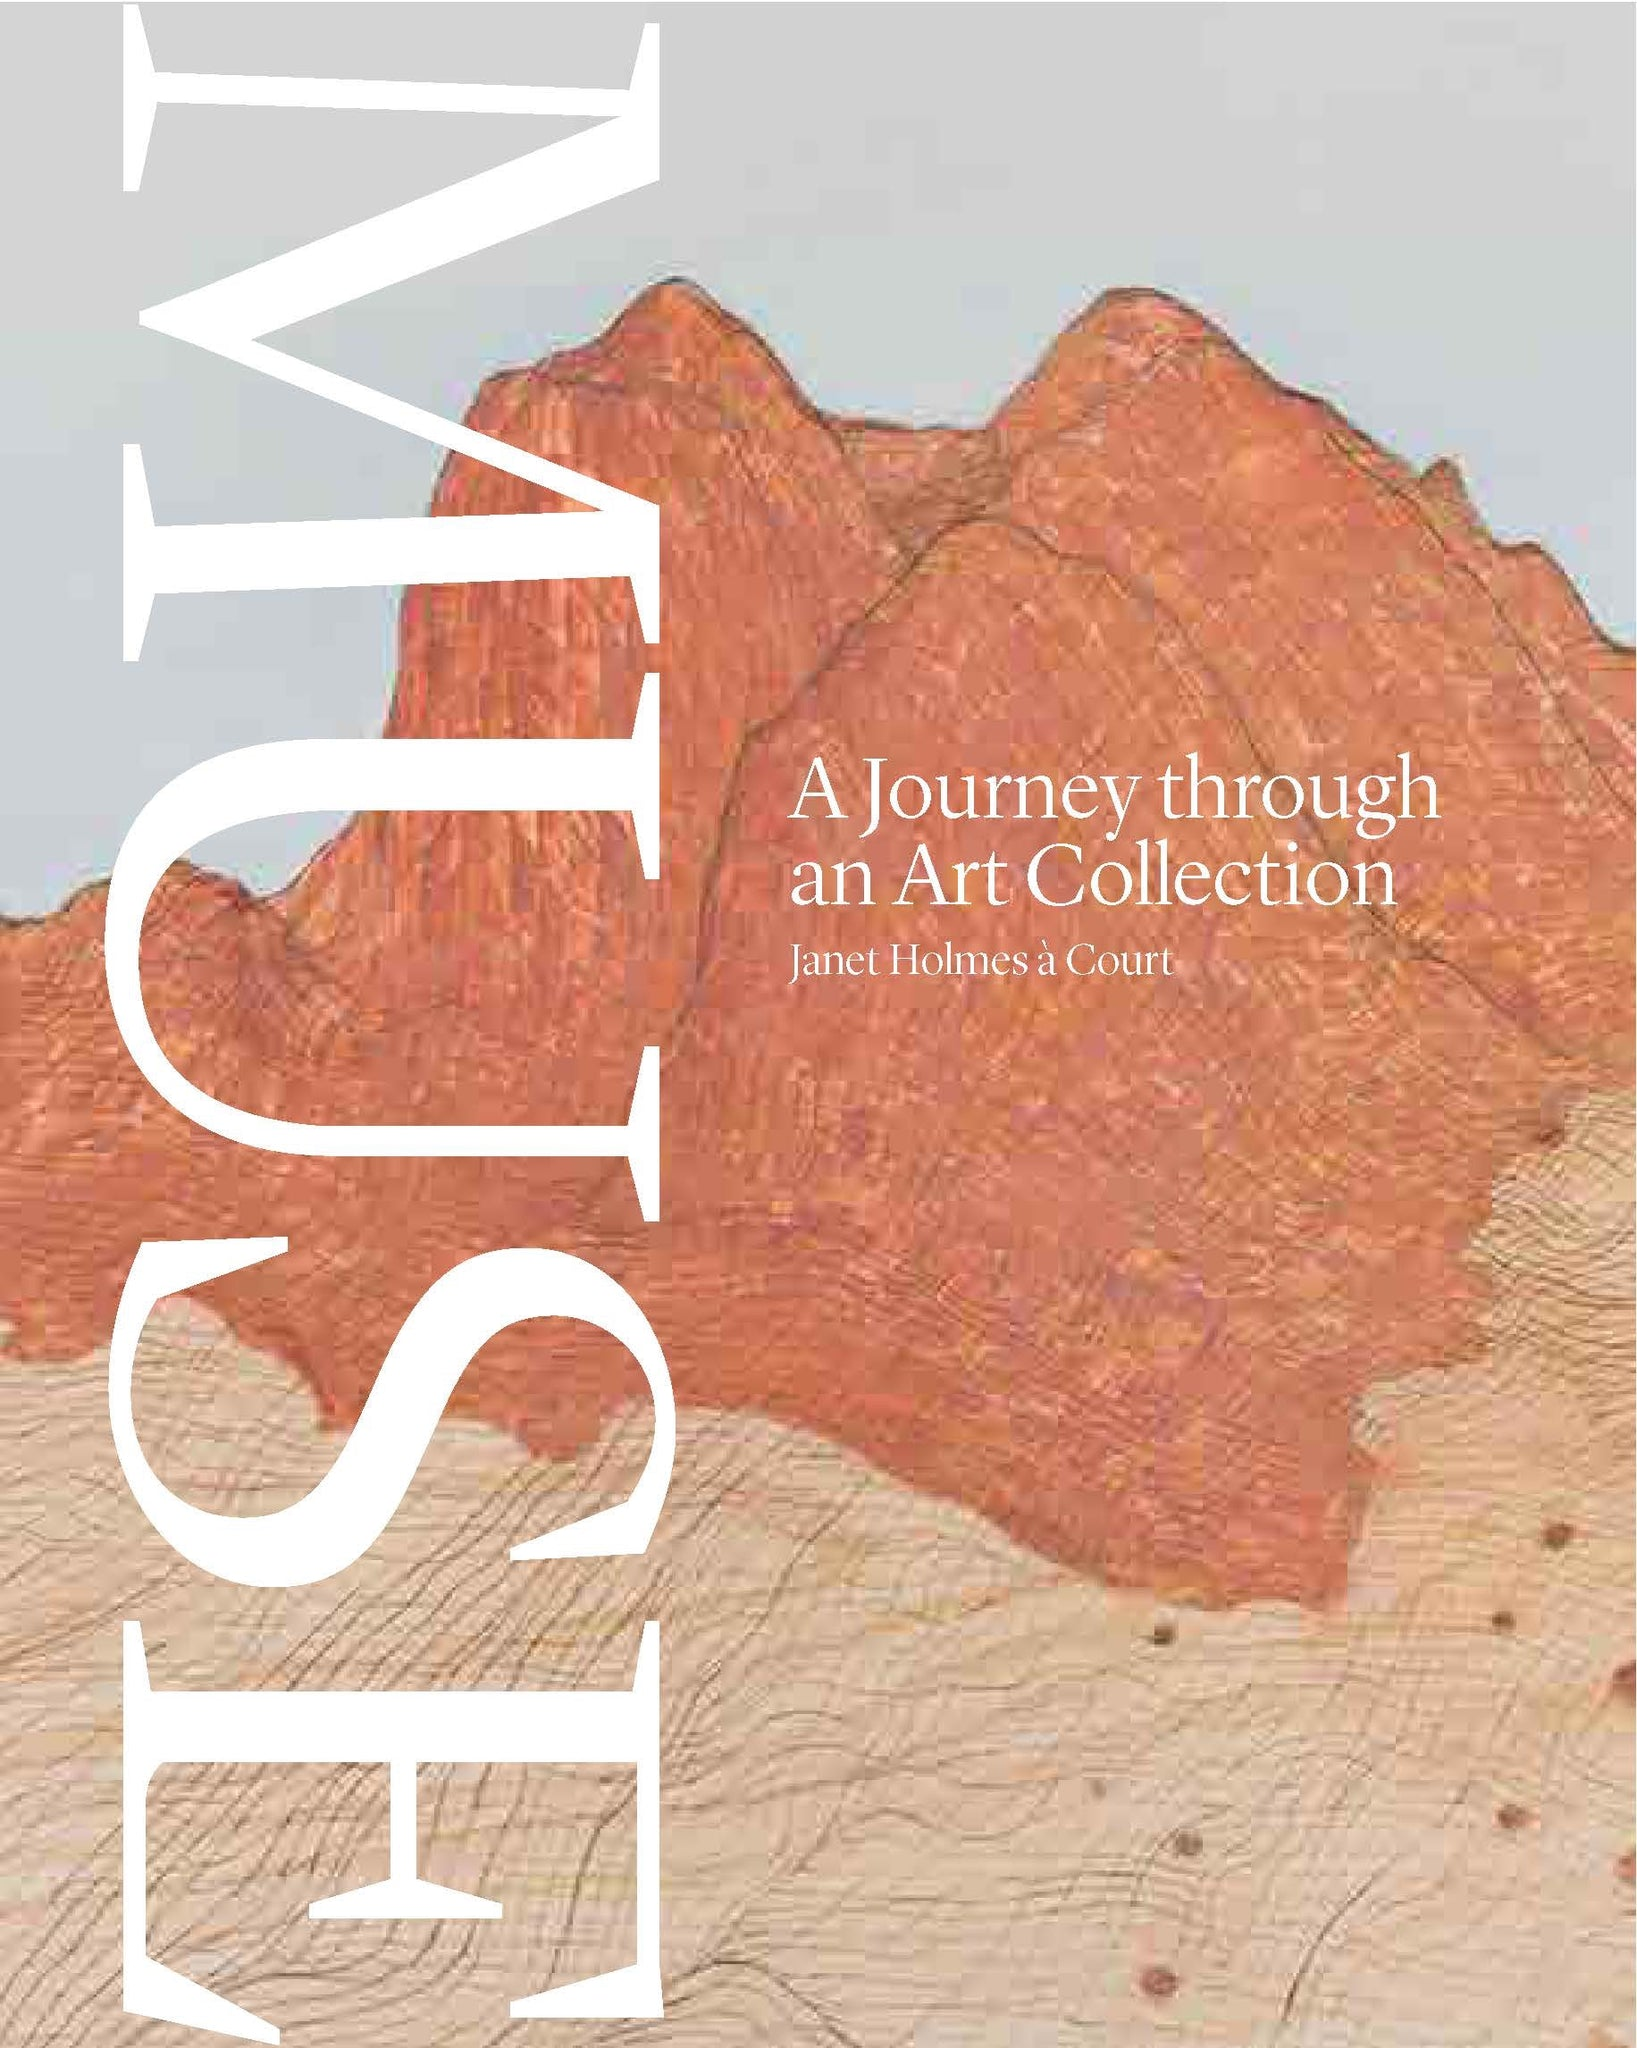 Muse: A Journey through an Art Collection